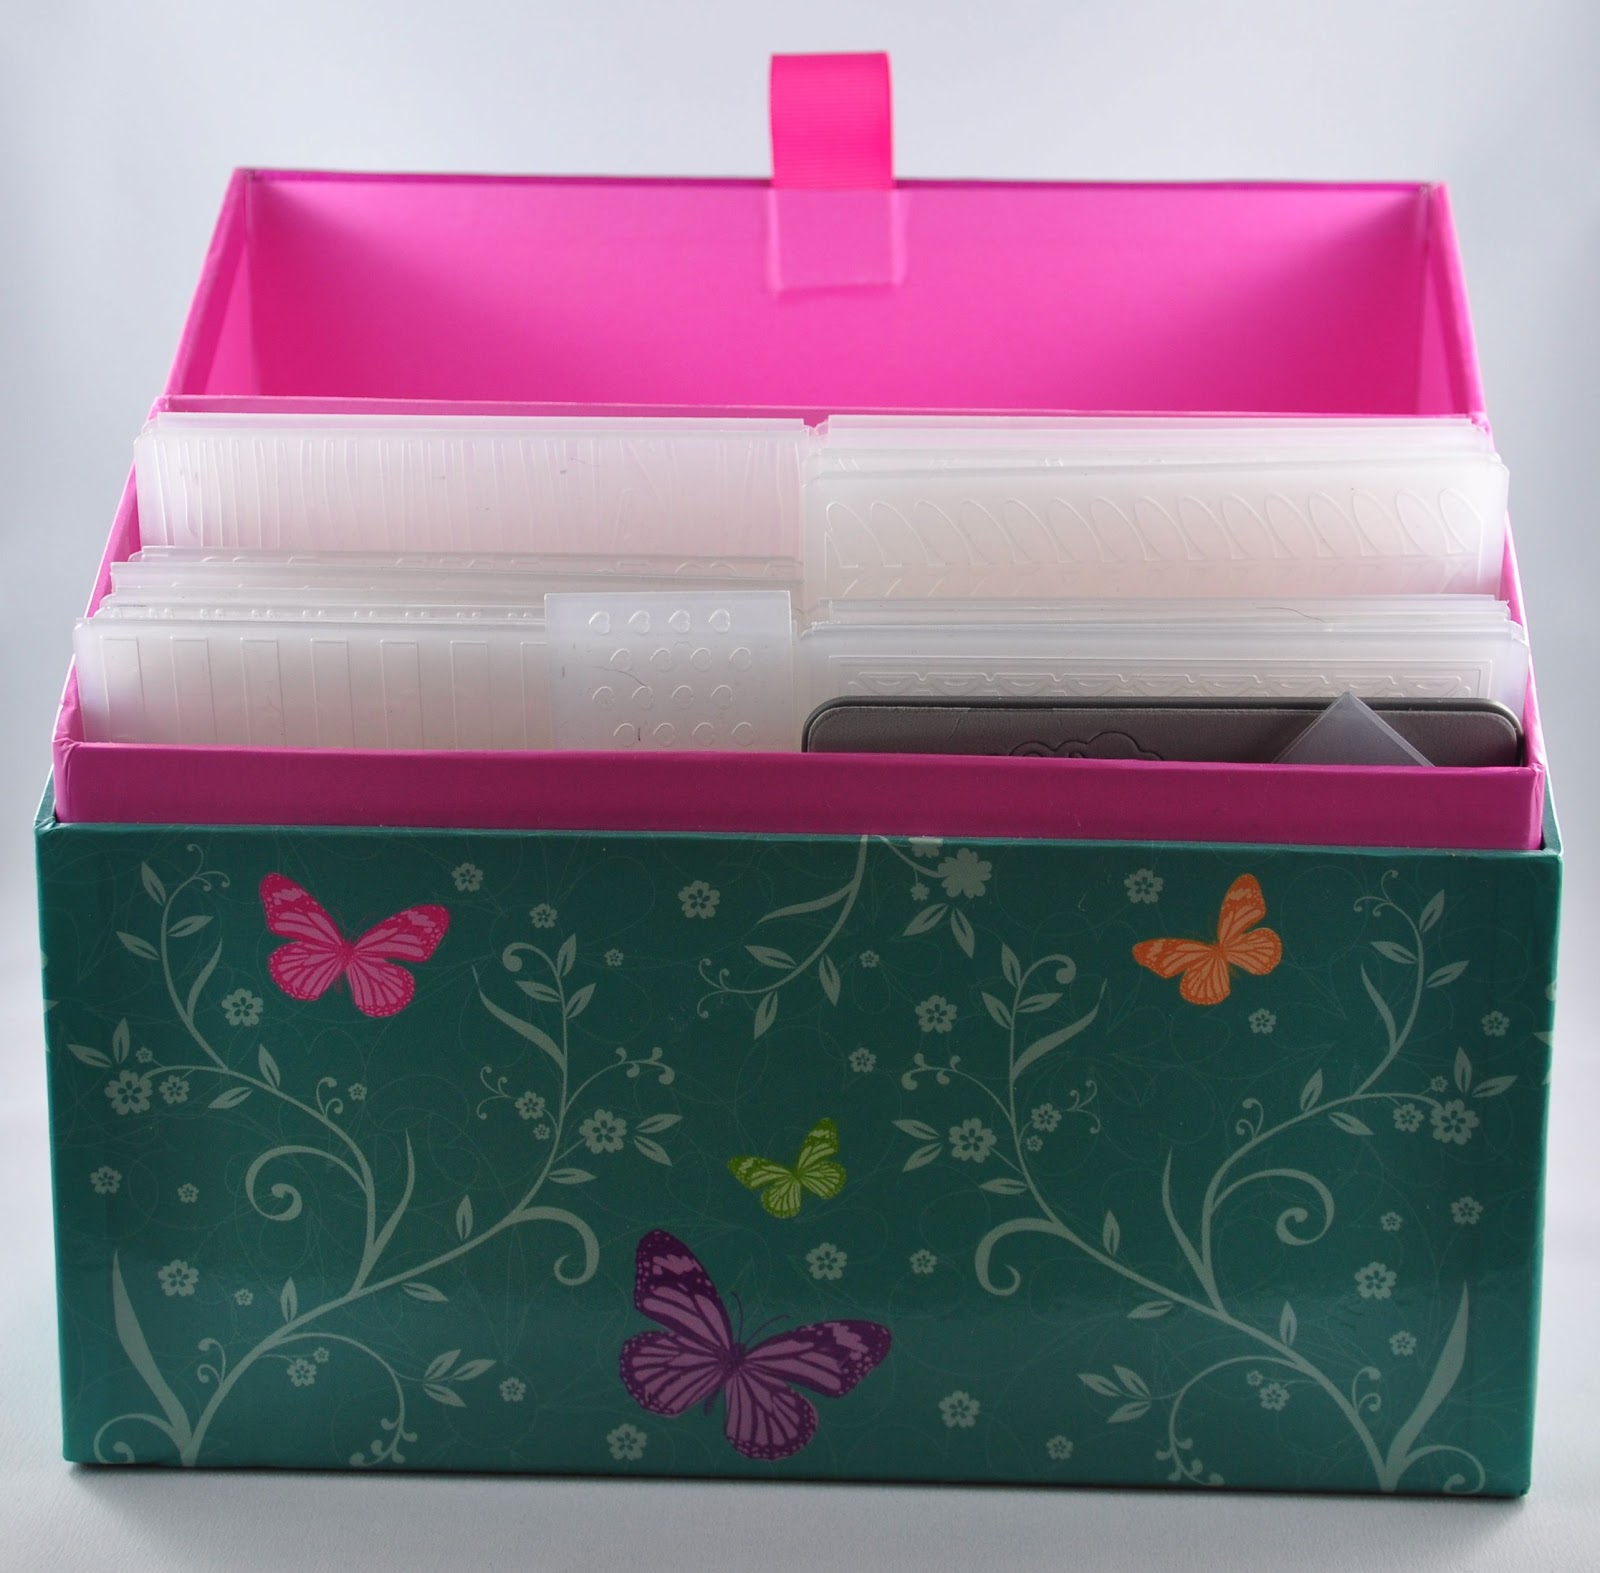 Snippets By Design: Papercraft Storage {Organizing Tools